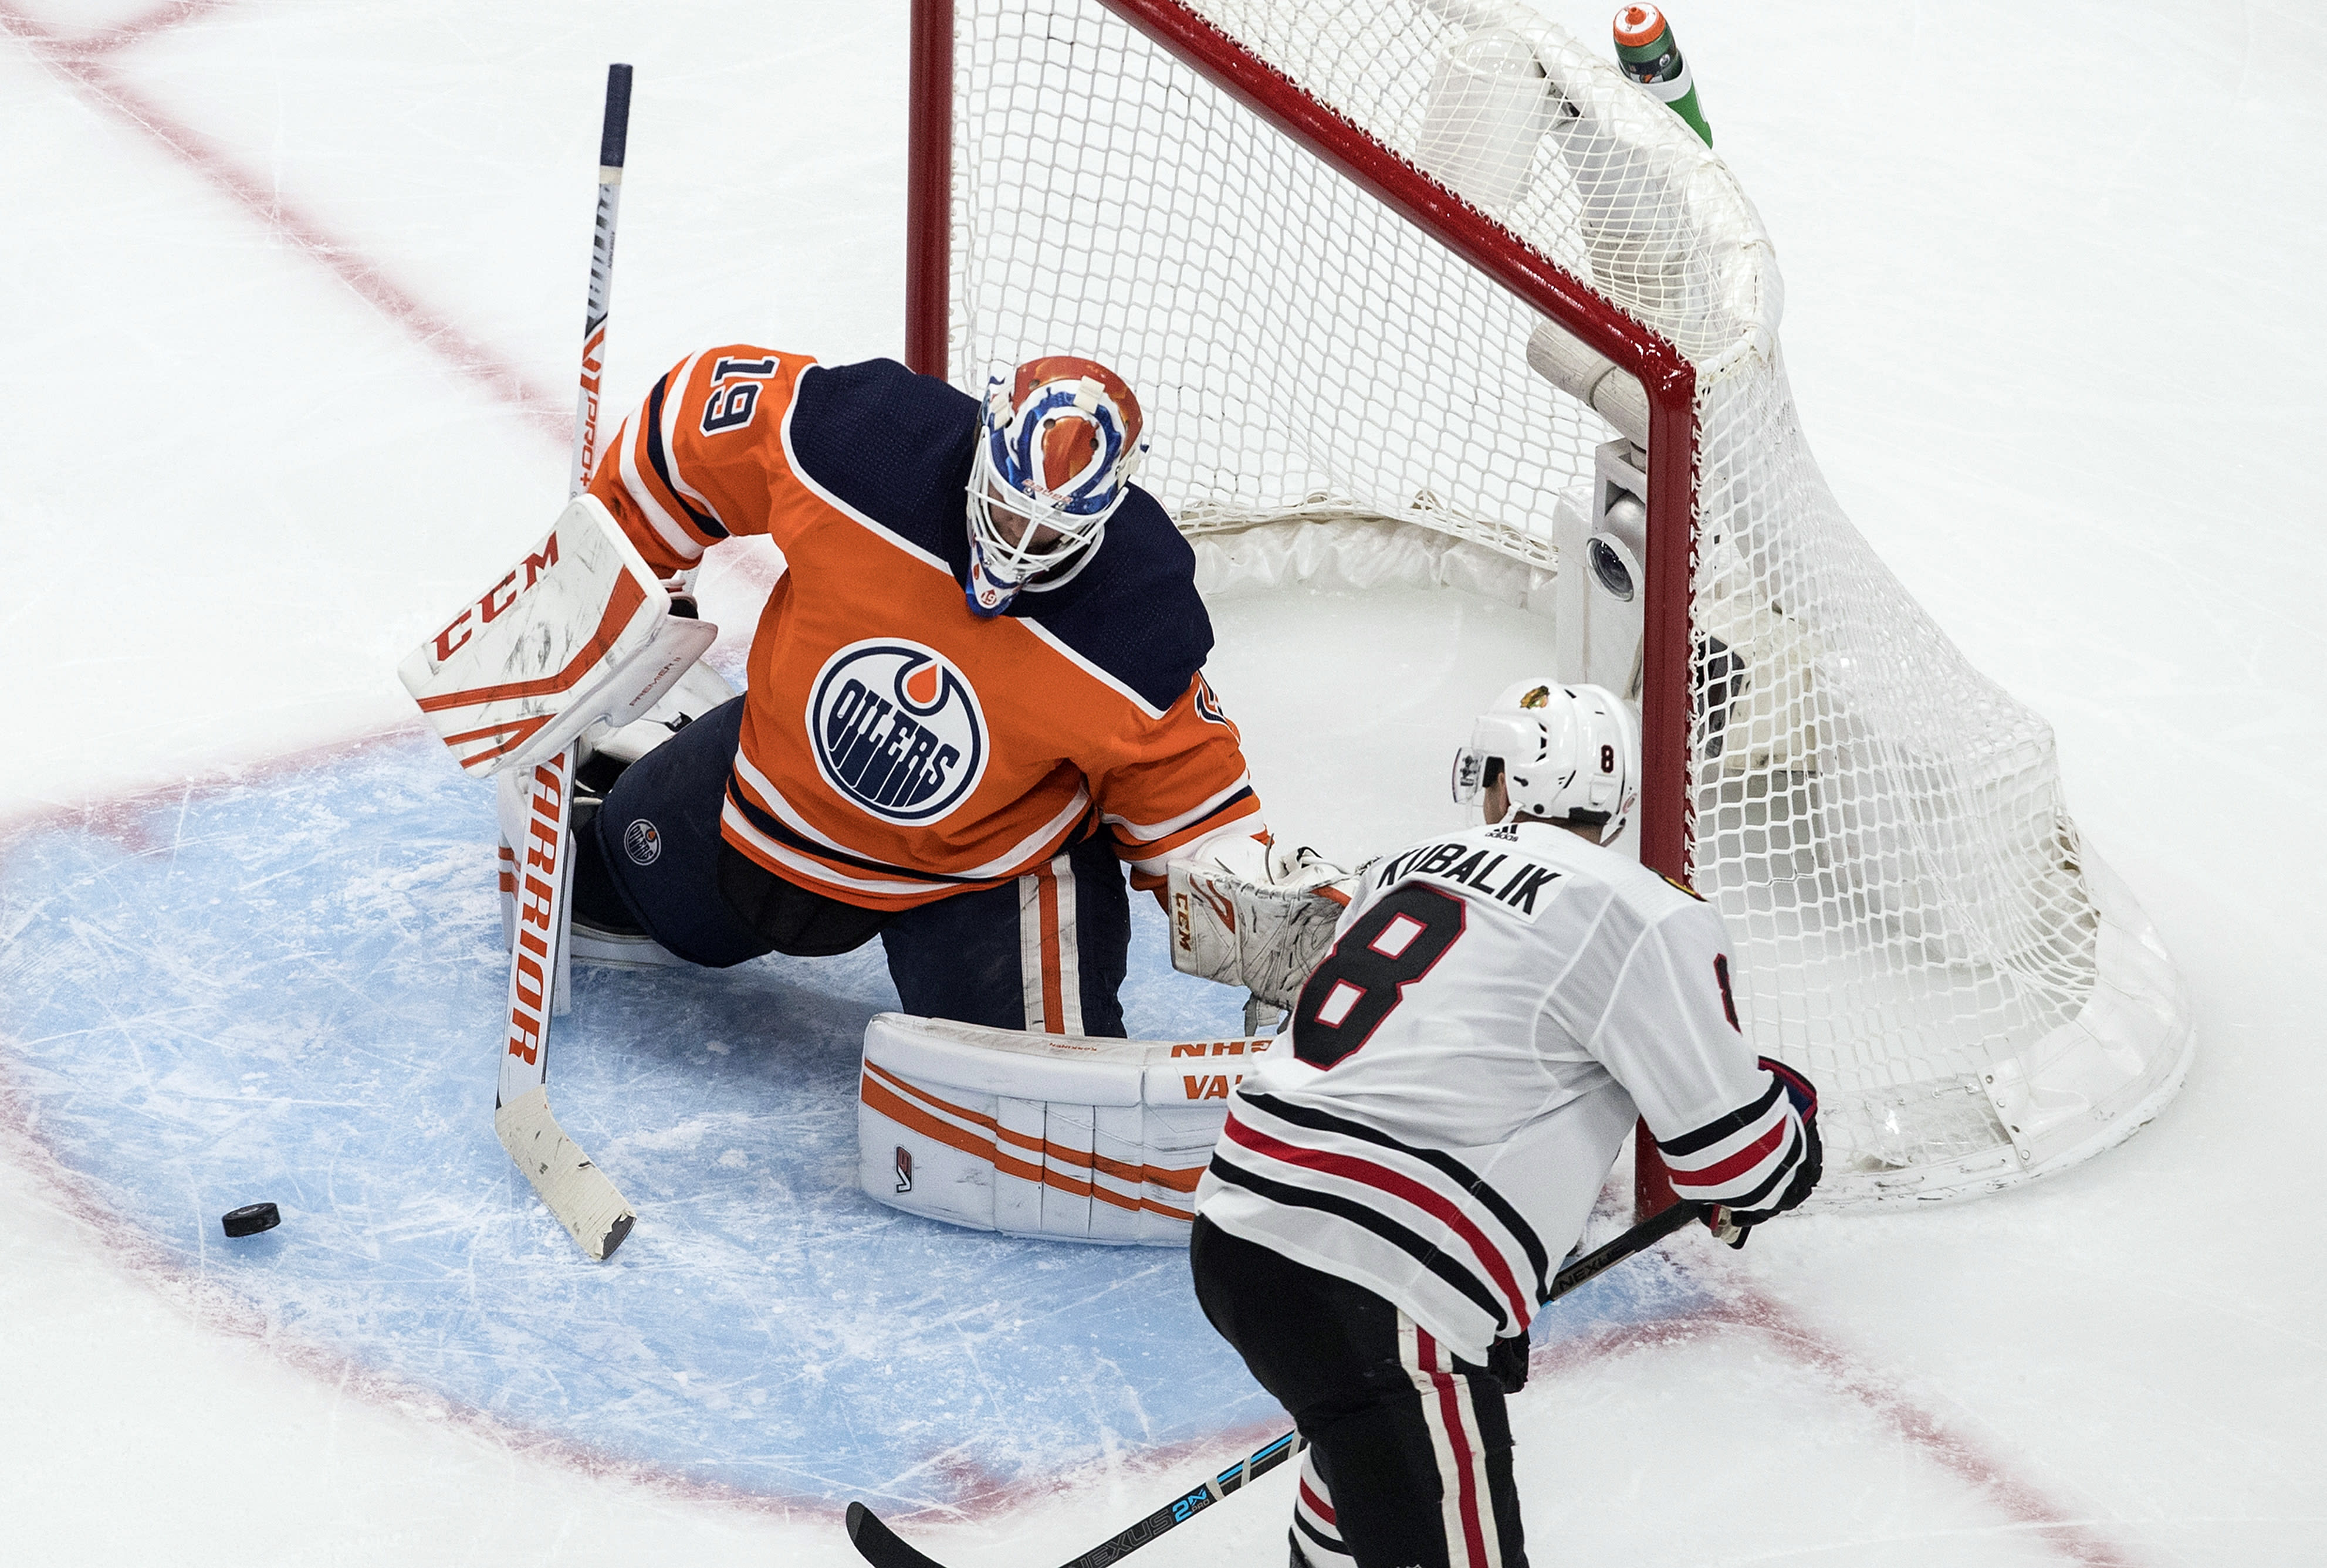 Edmonton Oilers goalie Mikko Koskinen (19) makes a save against Chicago Blackhawks' Dominik Kubalik (8) during third-period NHL hockey Stanley Cup playoff game action in Edmonton, Alberta, Saturday, Aug. 1, 2020. (Jason Franson/The Canadian Press via AP)